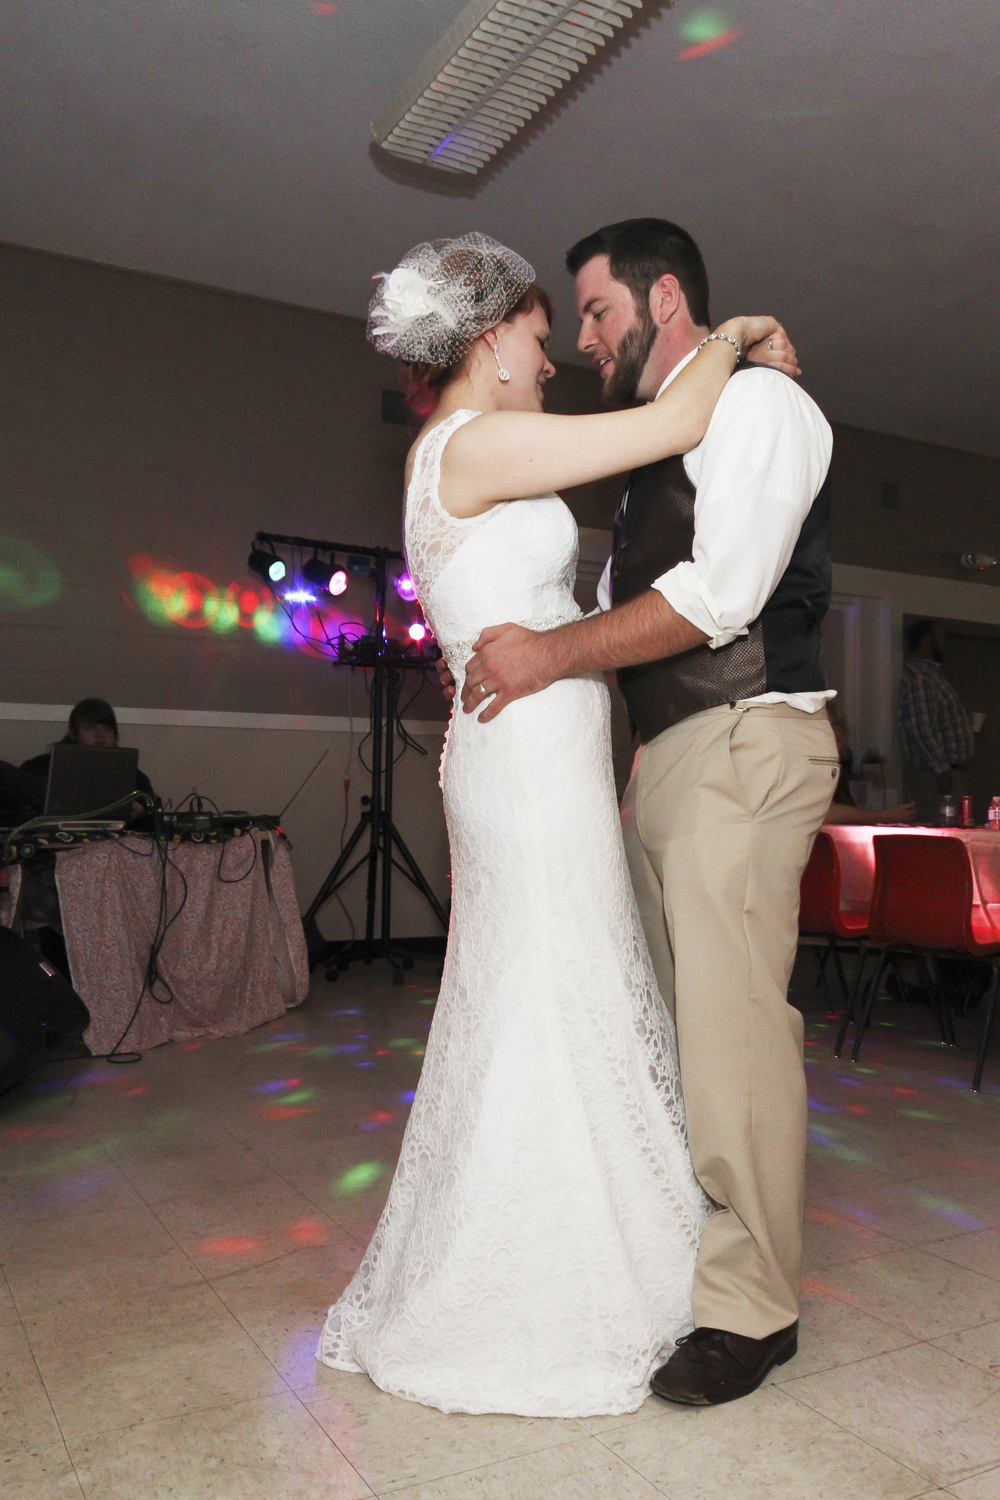 The first dance as husband and wife. © 2014 Shealyn McGee-Sarns